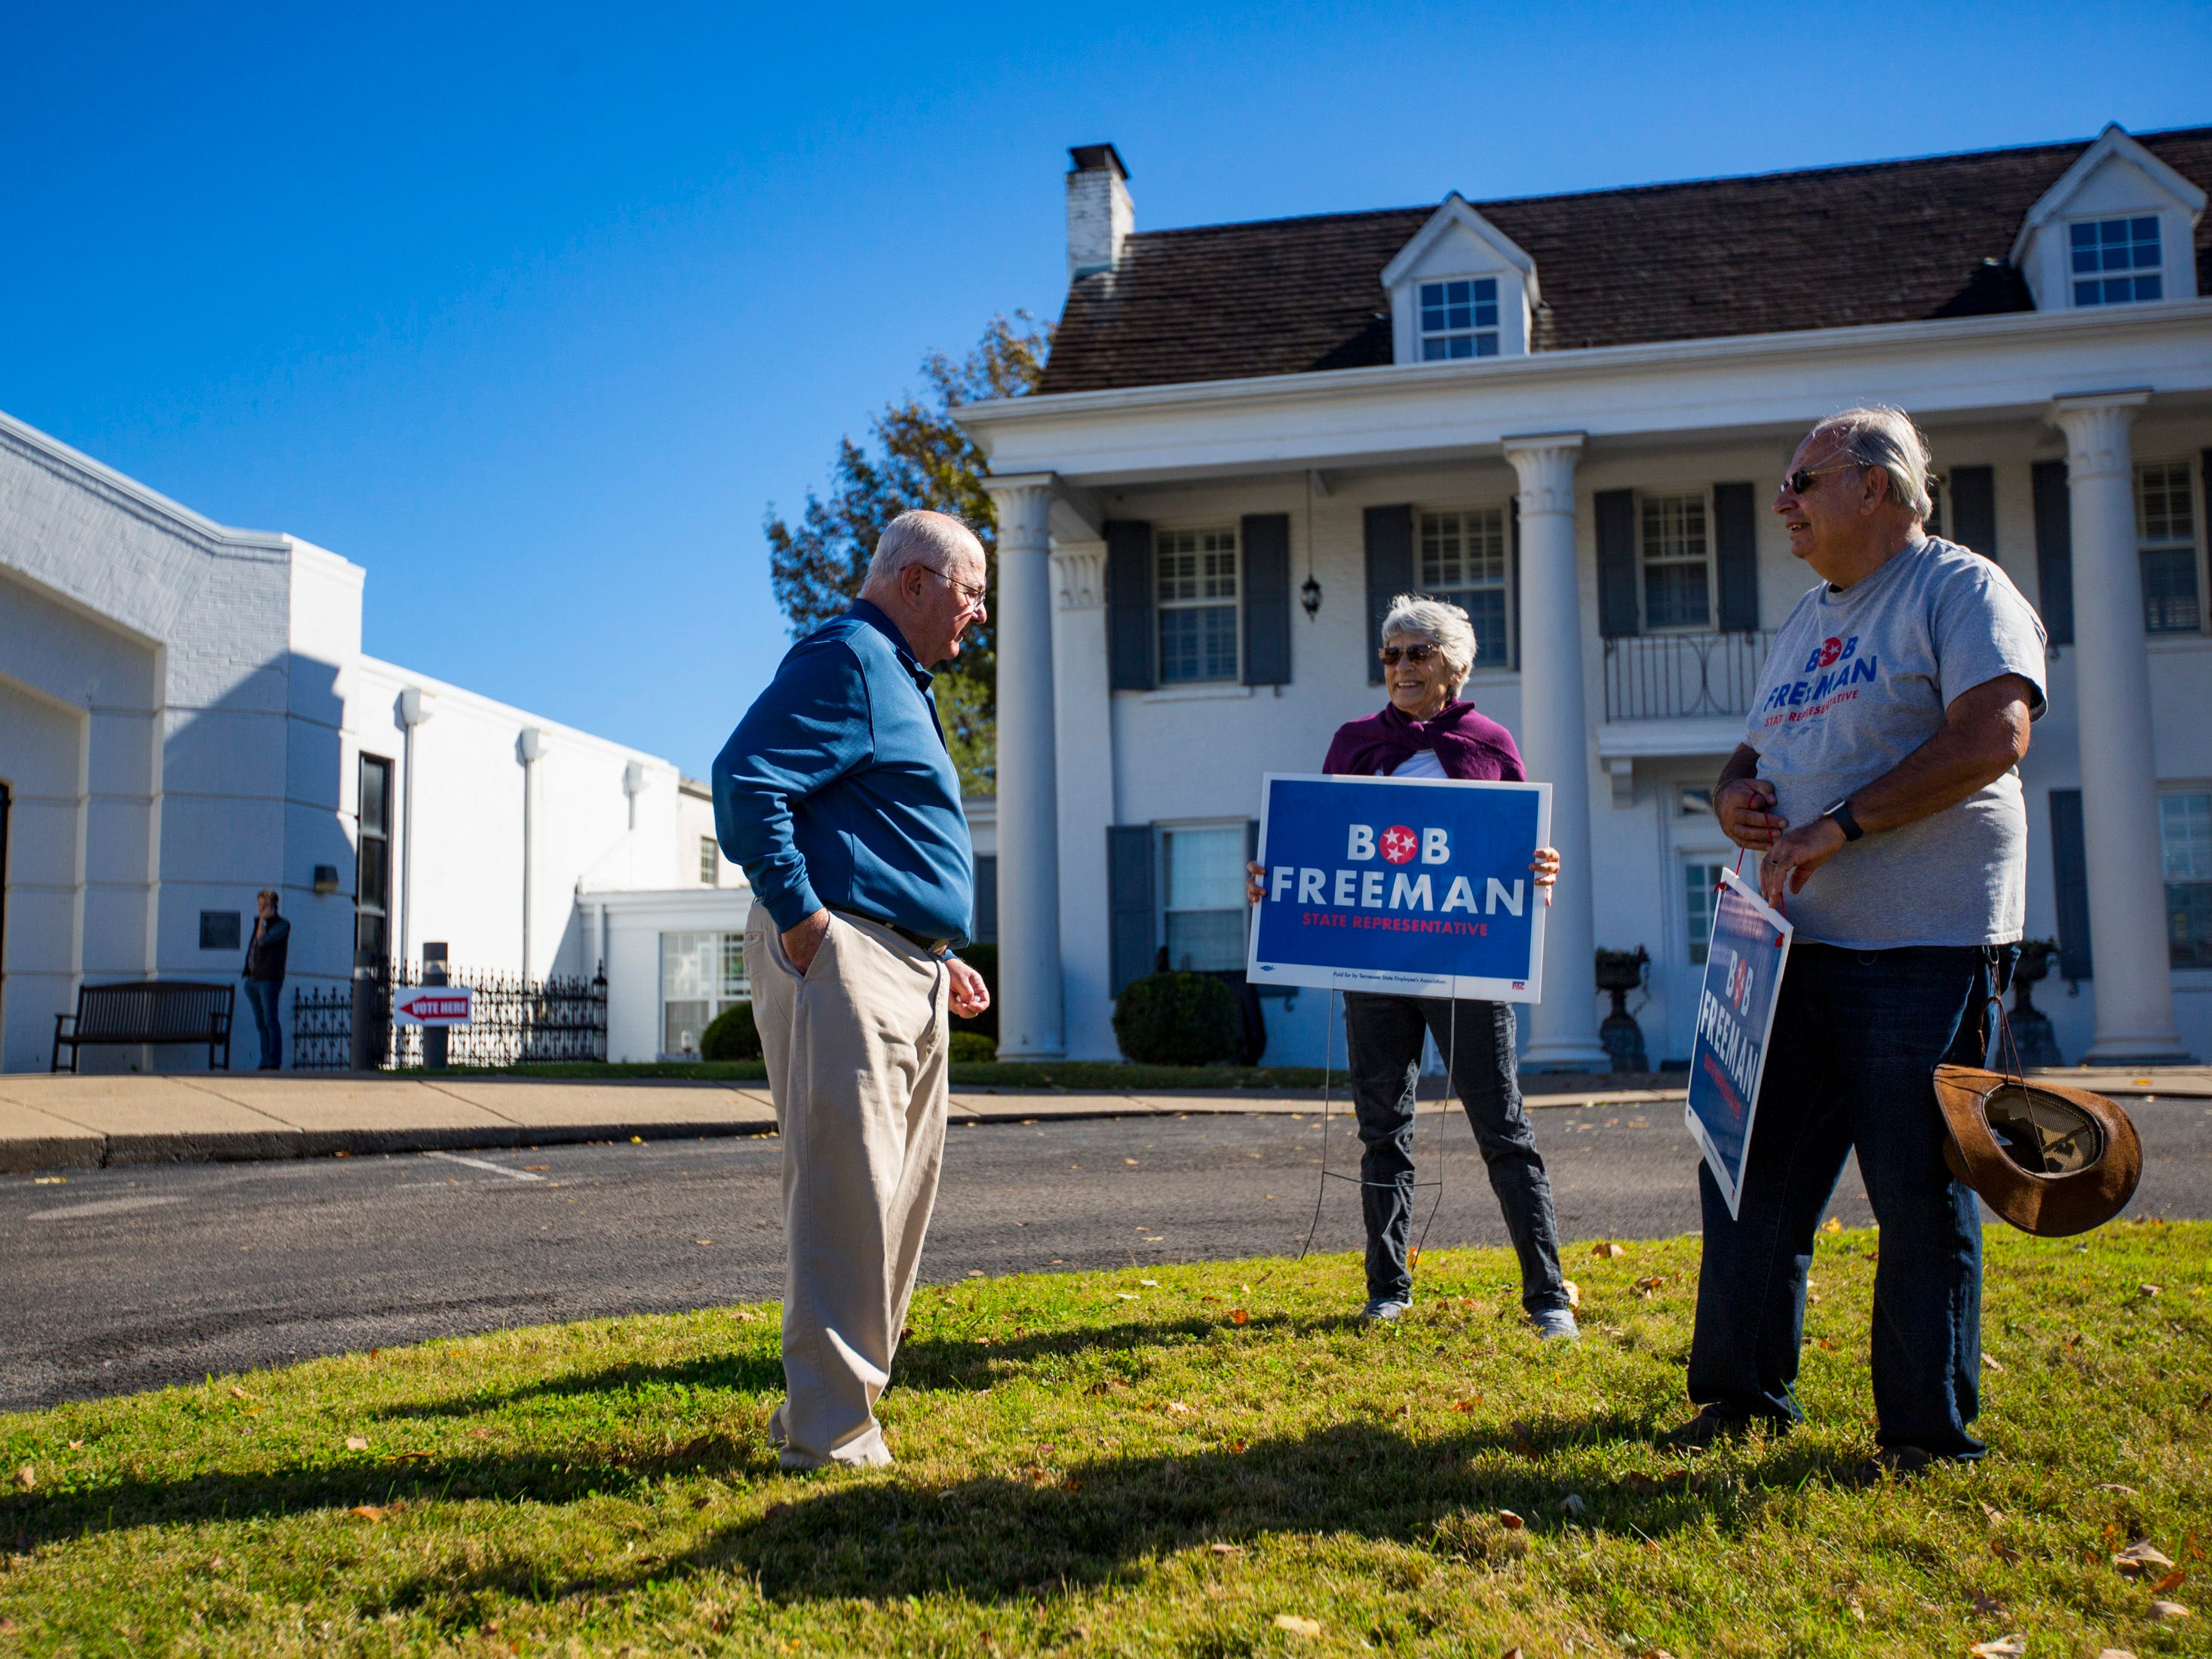 Stewart Kresge speaks with Pat McDonald and Roger Schecter, who hold Bob Freeman campaign signs, outside of the Hillsboro Presbyterian Church polling place in Nashville on Tuesday, Nov. 6, 2018.